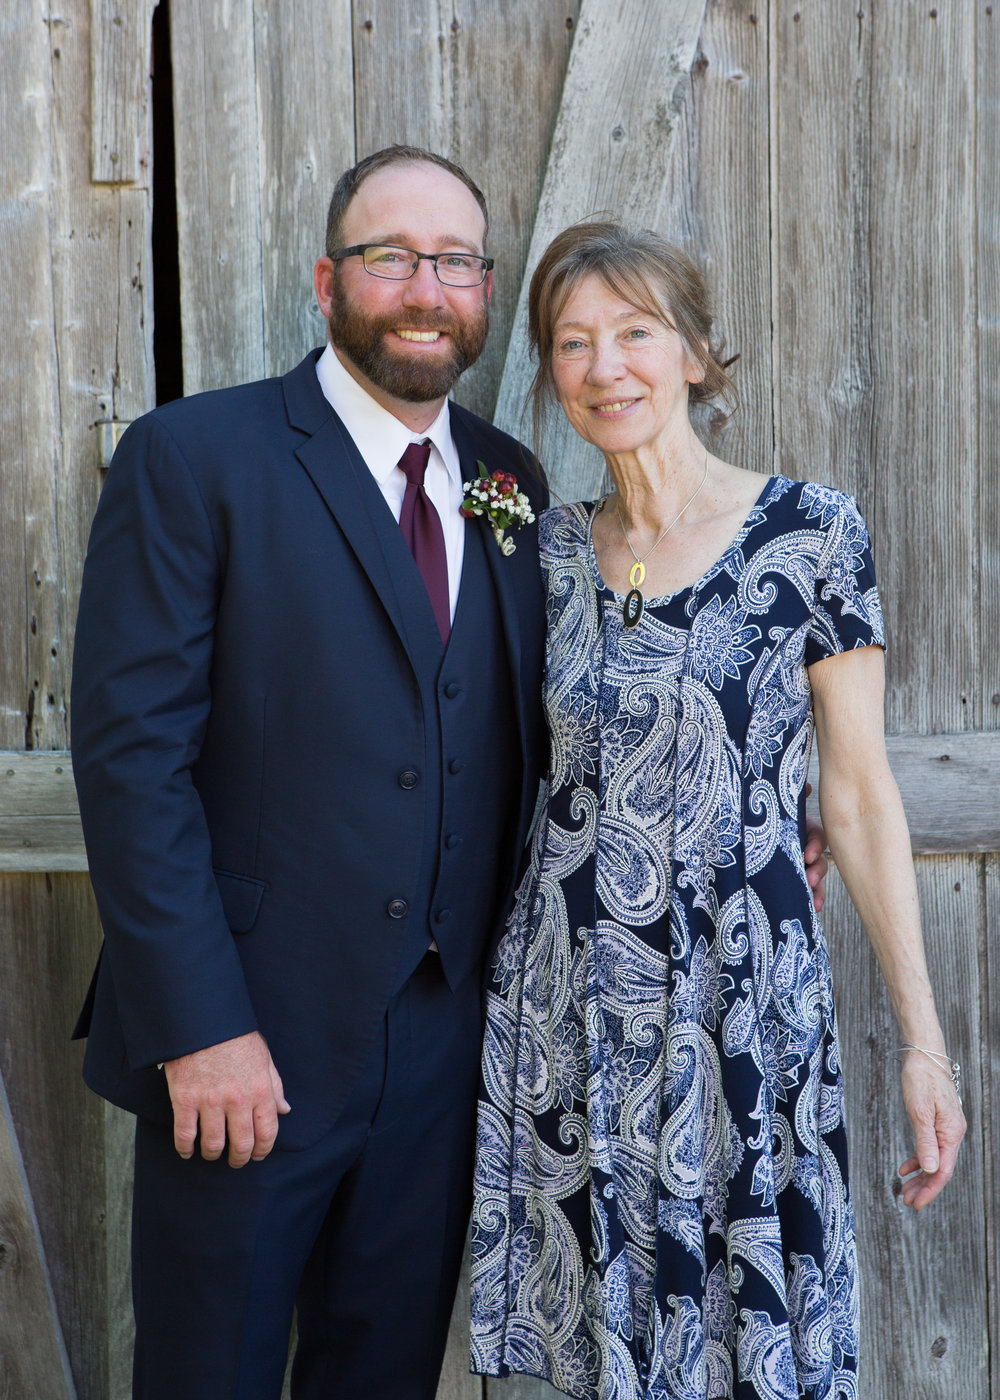 dottie&ryanBLOG (52 of 120).jpg